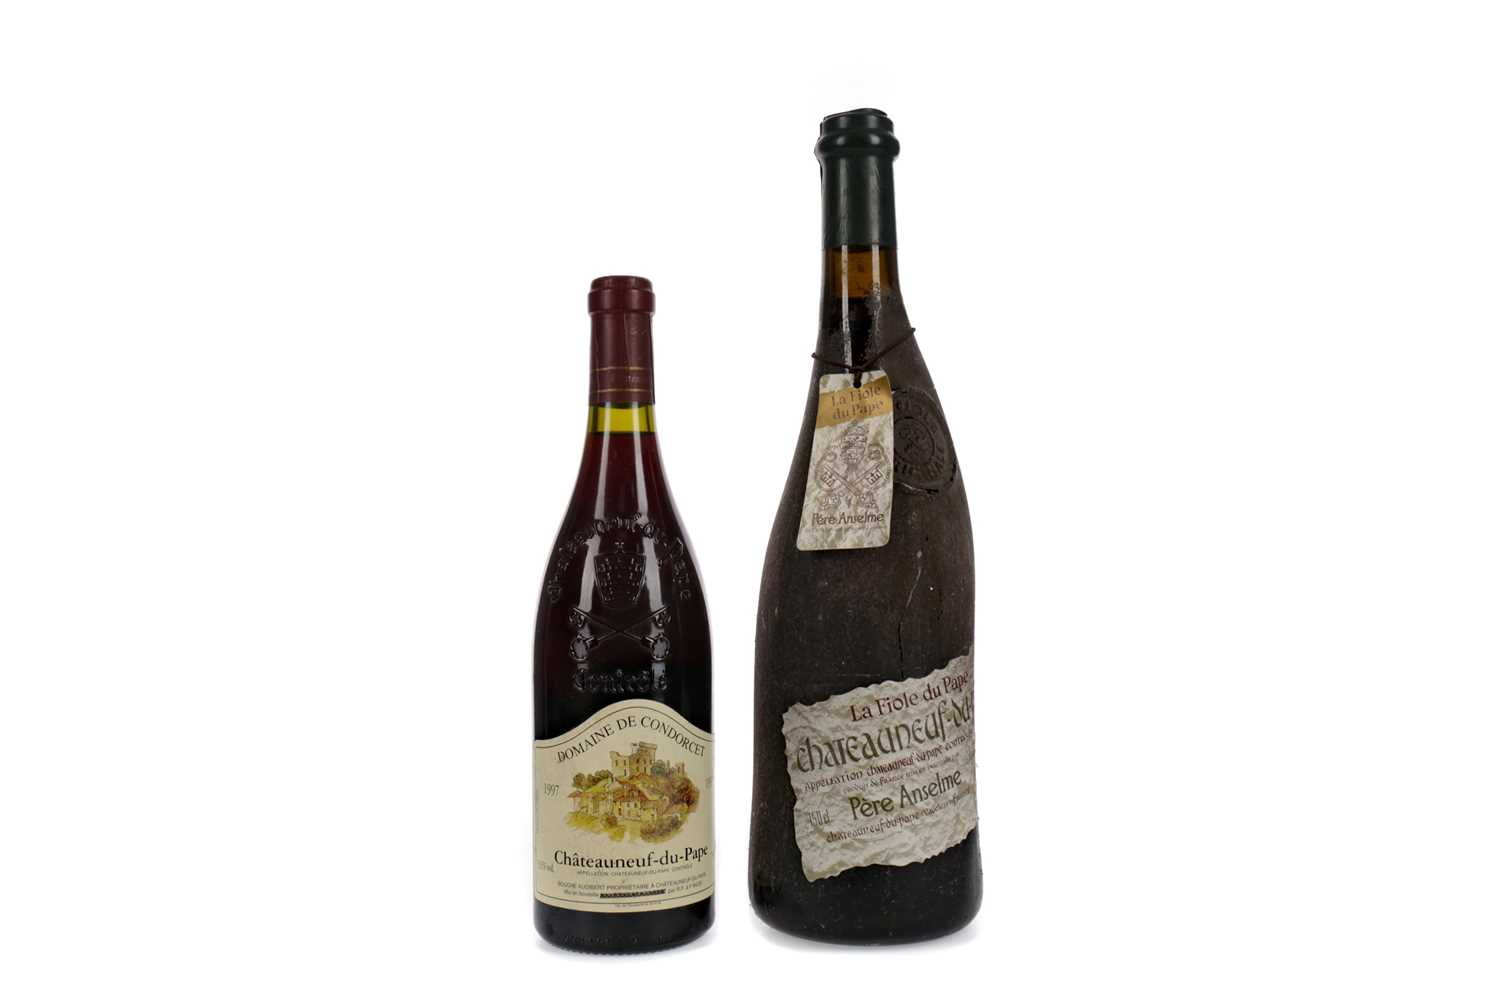 Lot 32 - MAGNUM OF PERE ANSELME CHATEANEUF-DU-PAPE AND ONE BOTTLE OF DOMAINE DE CONDERCET 1997